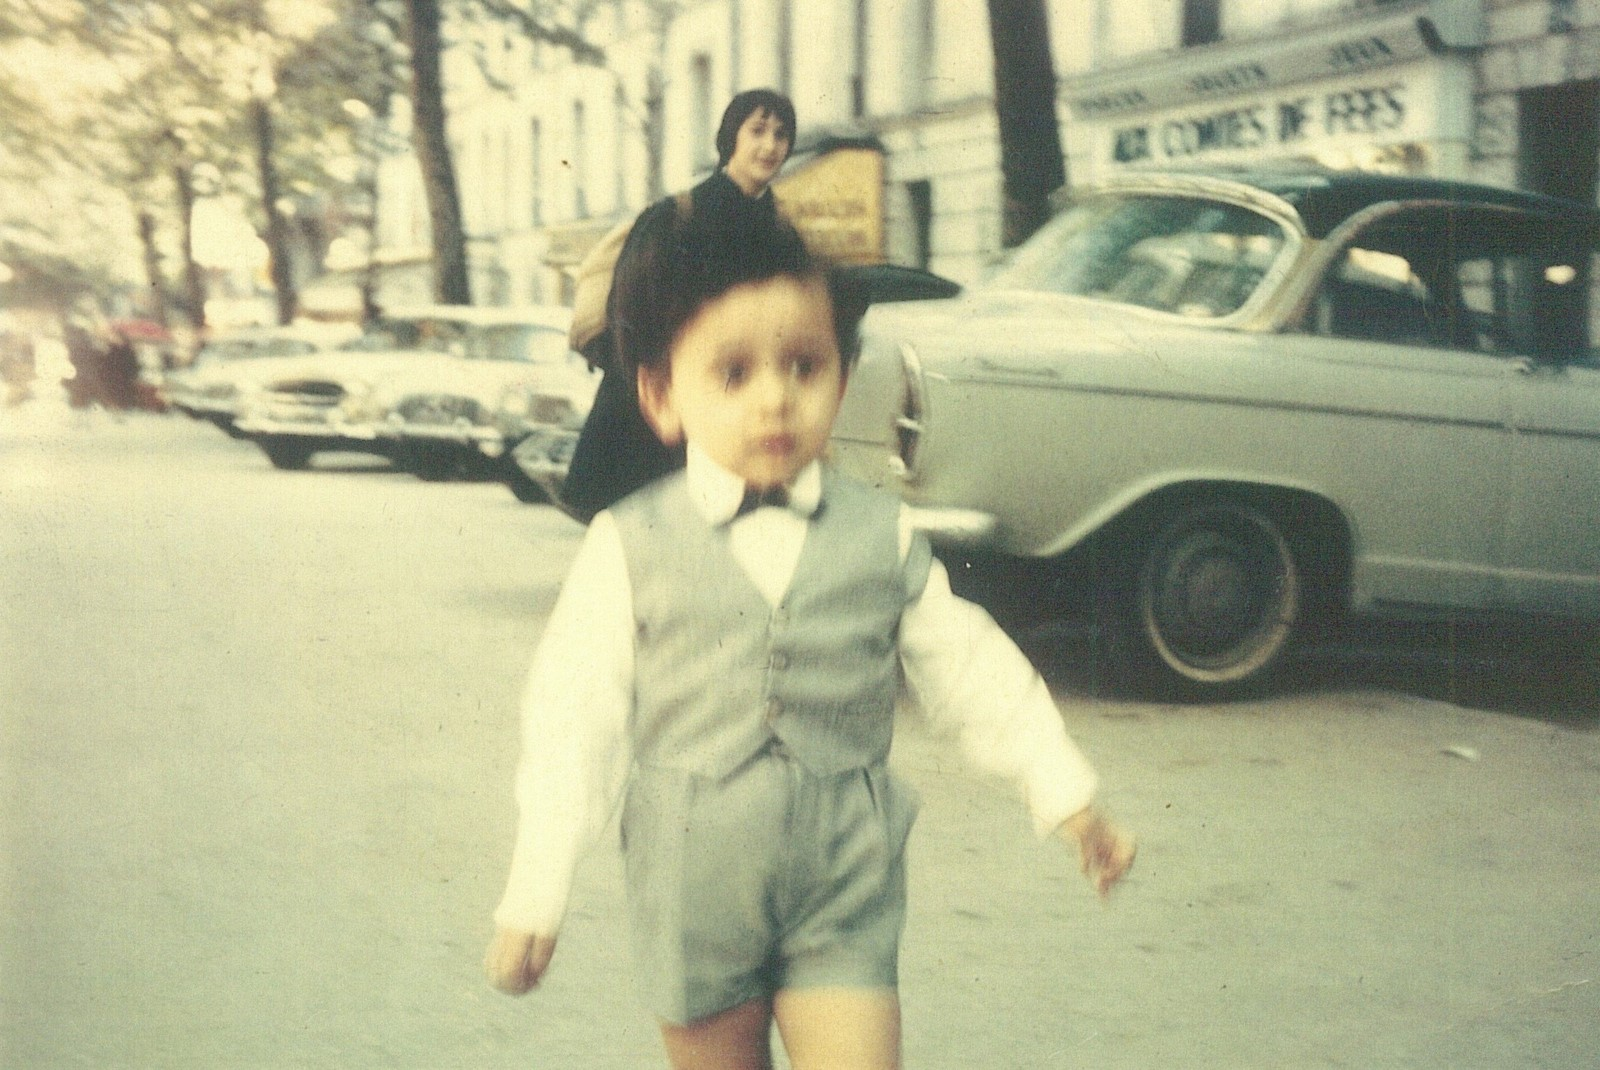 Christian Louboutin at the age of 2, Avenue Daumes